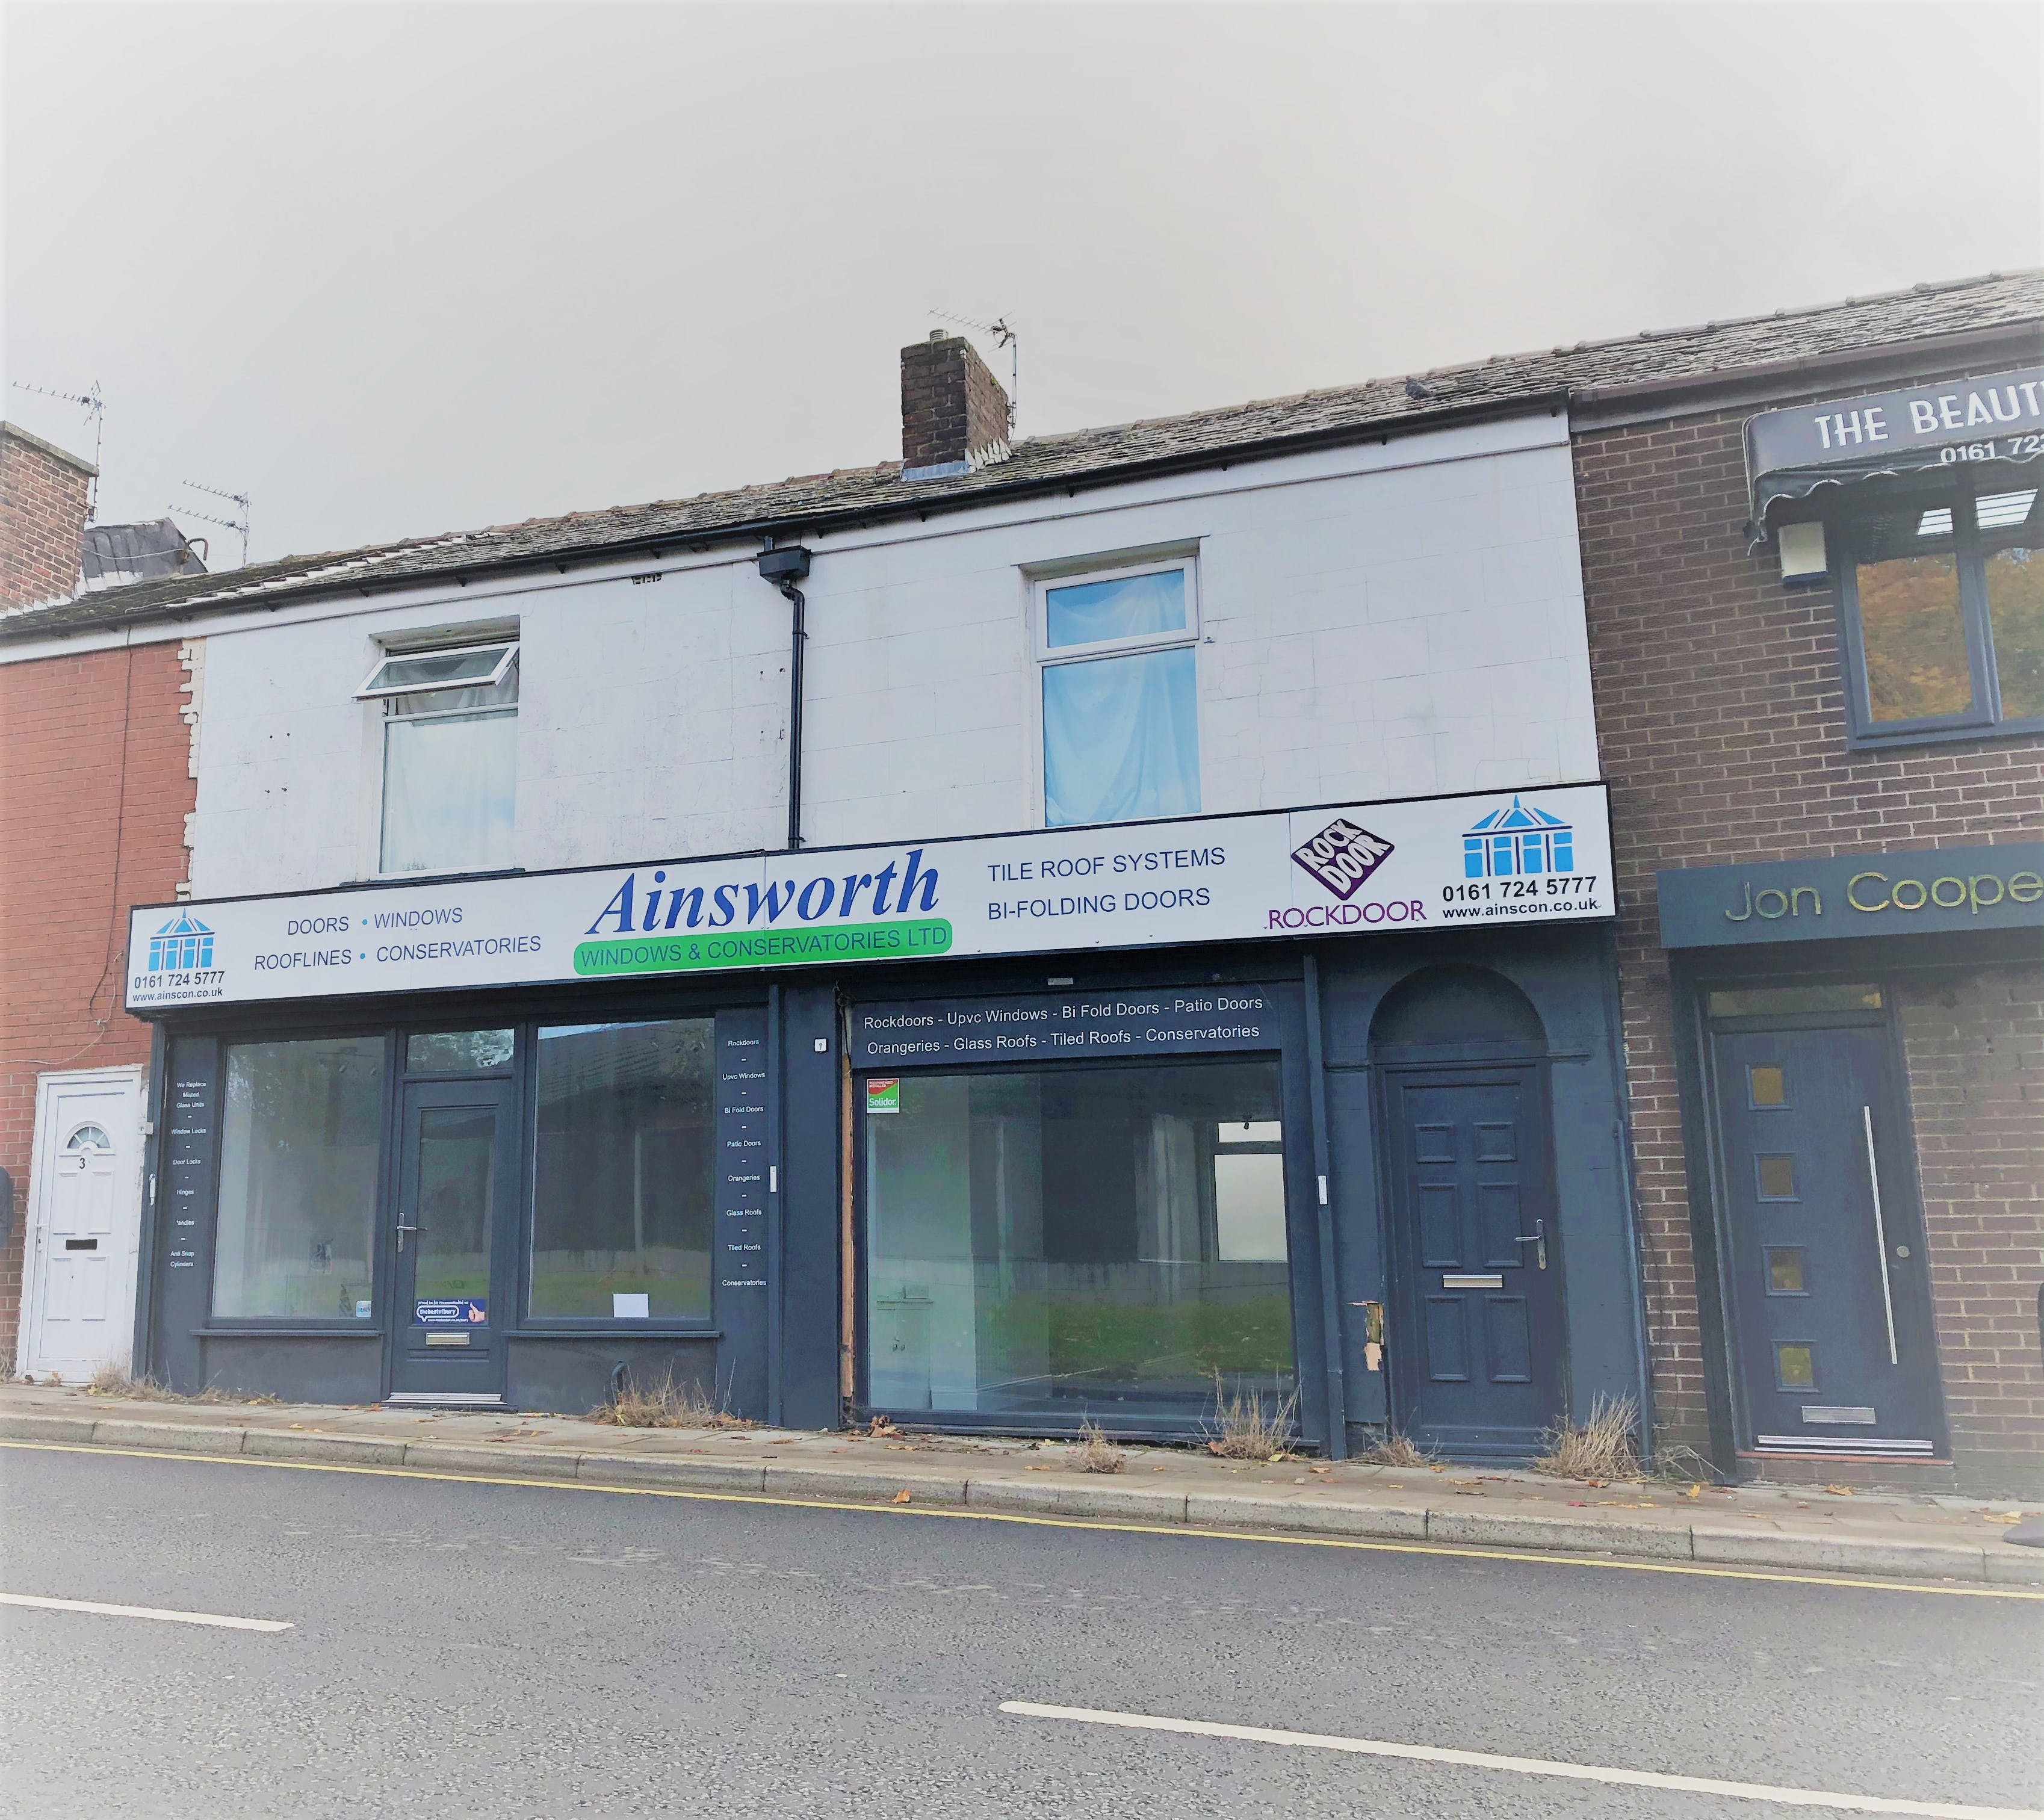 34-36 Ainsworth Road, Radcliffe, Manchester